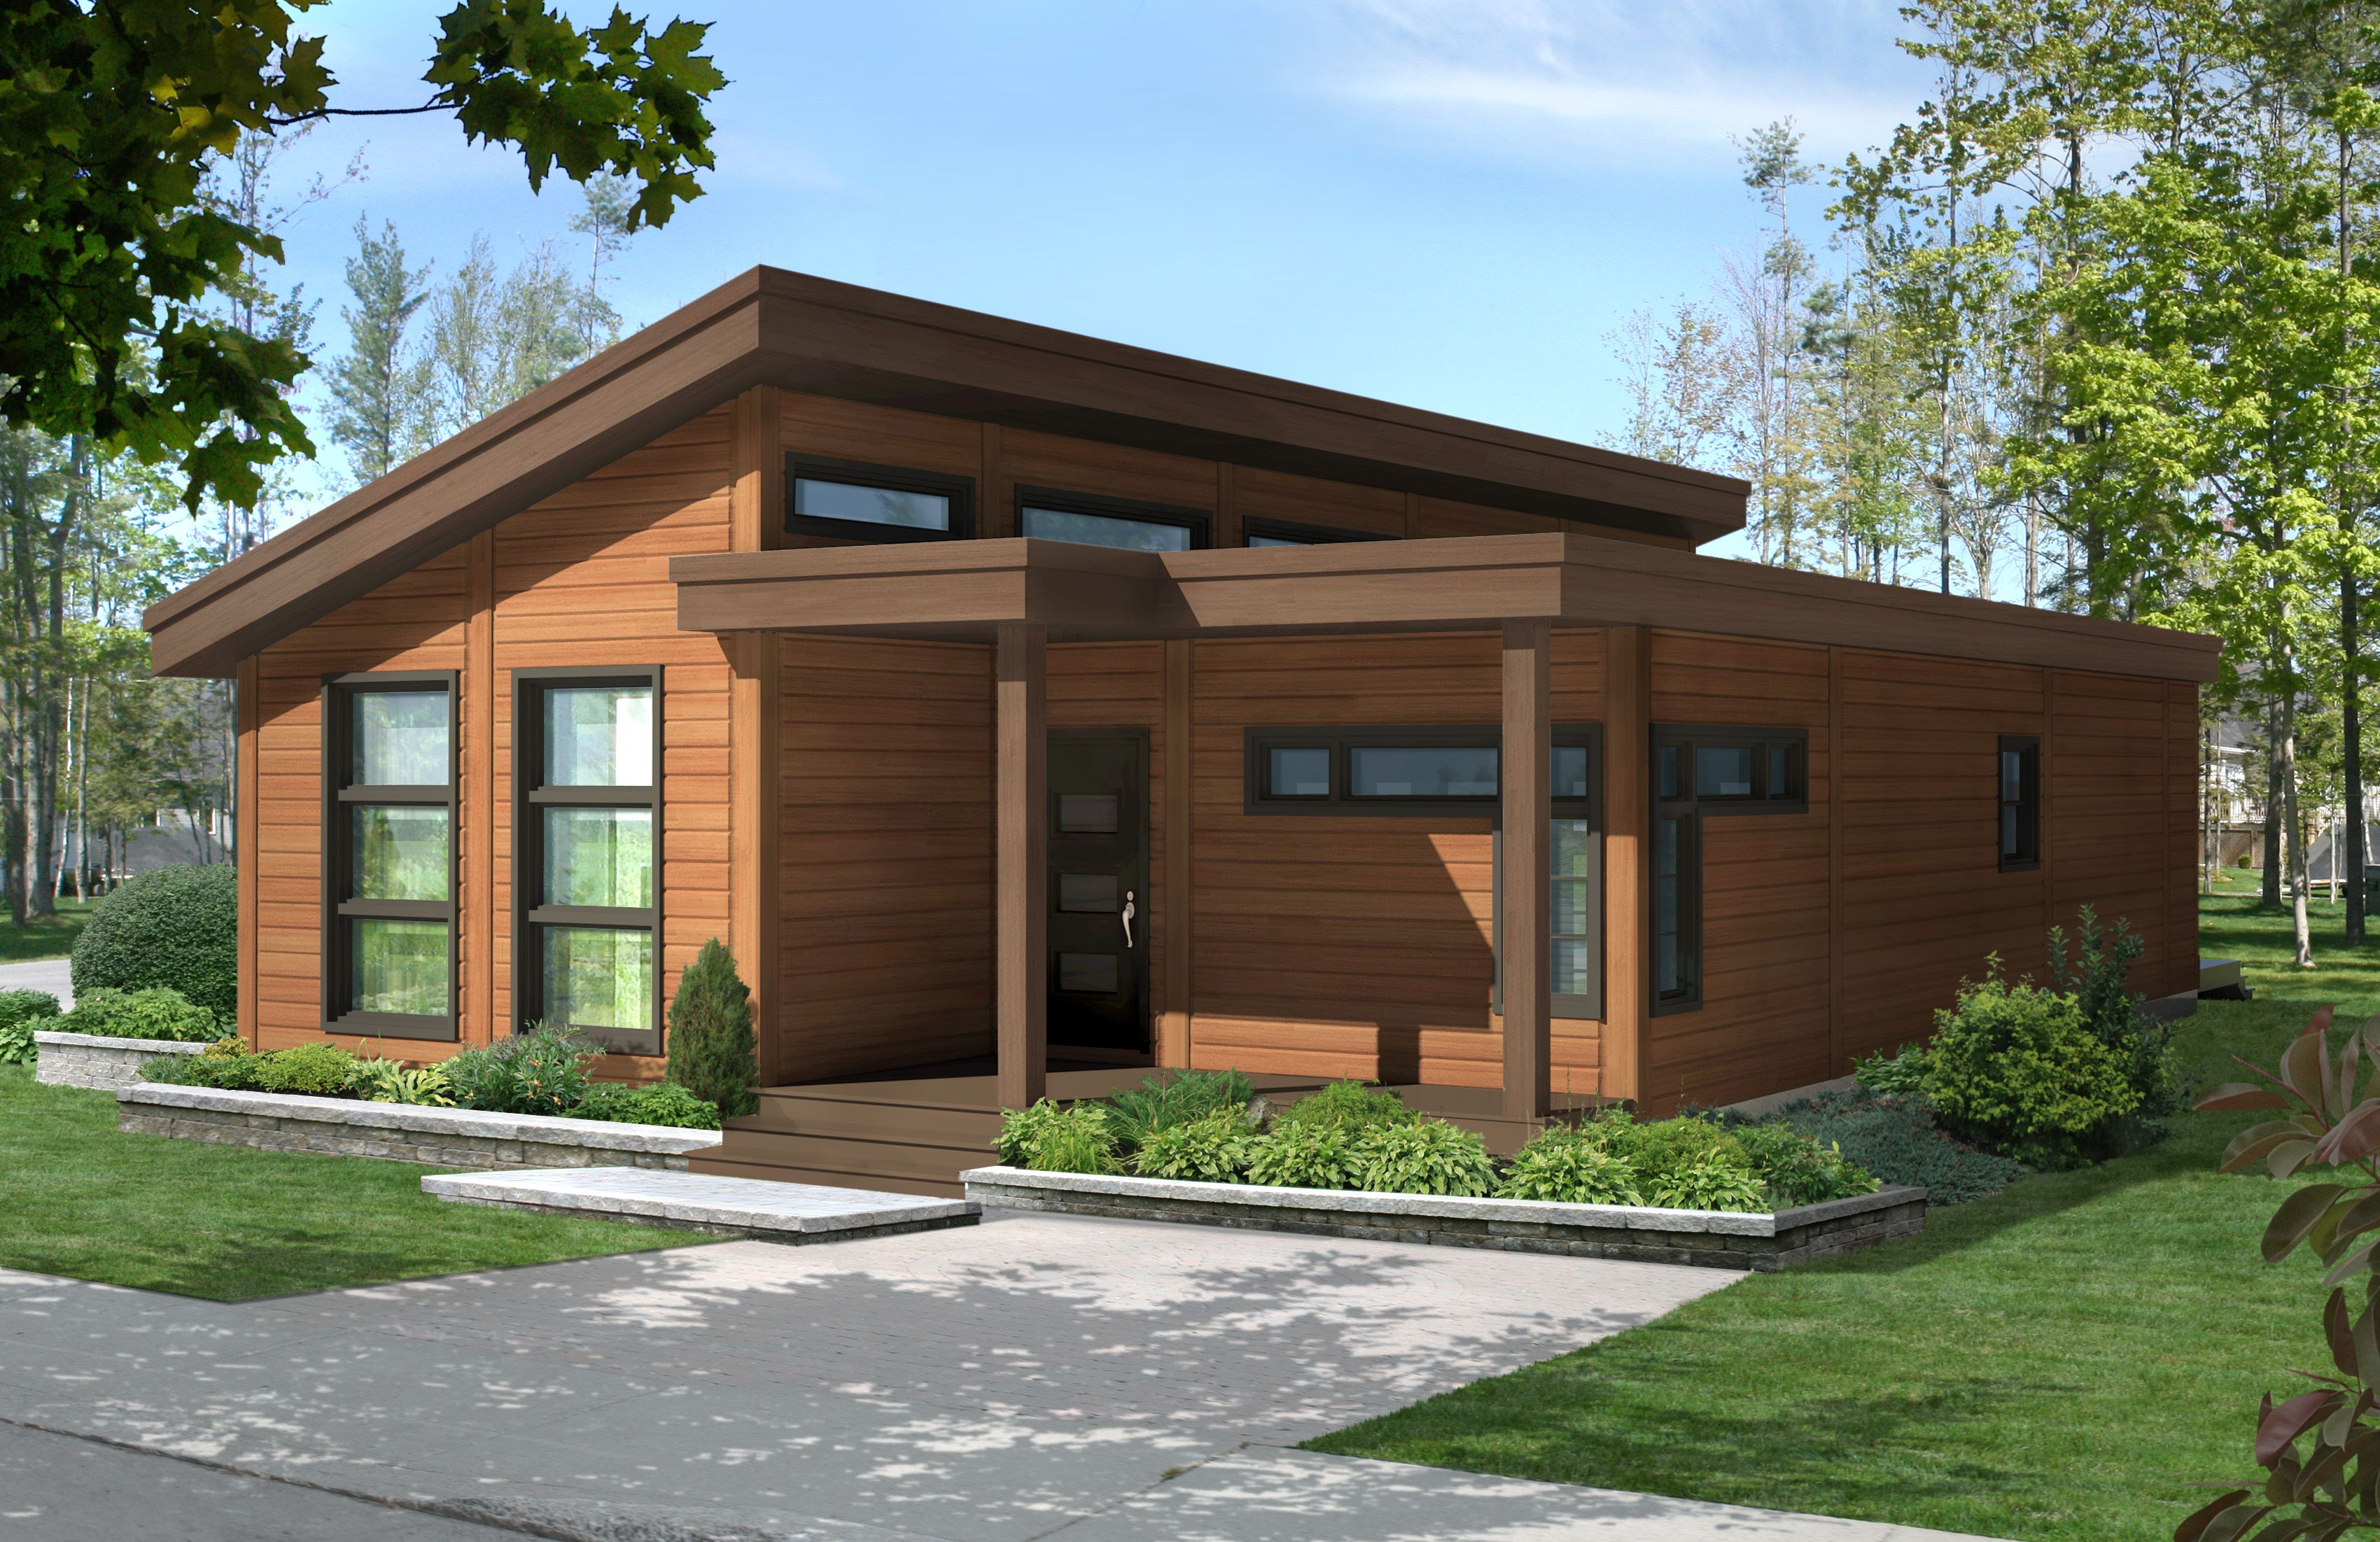 7938f12789b596029dc825d90a93f0e4 - 39+ Small Bamboo House Design And Floor Plan PNG